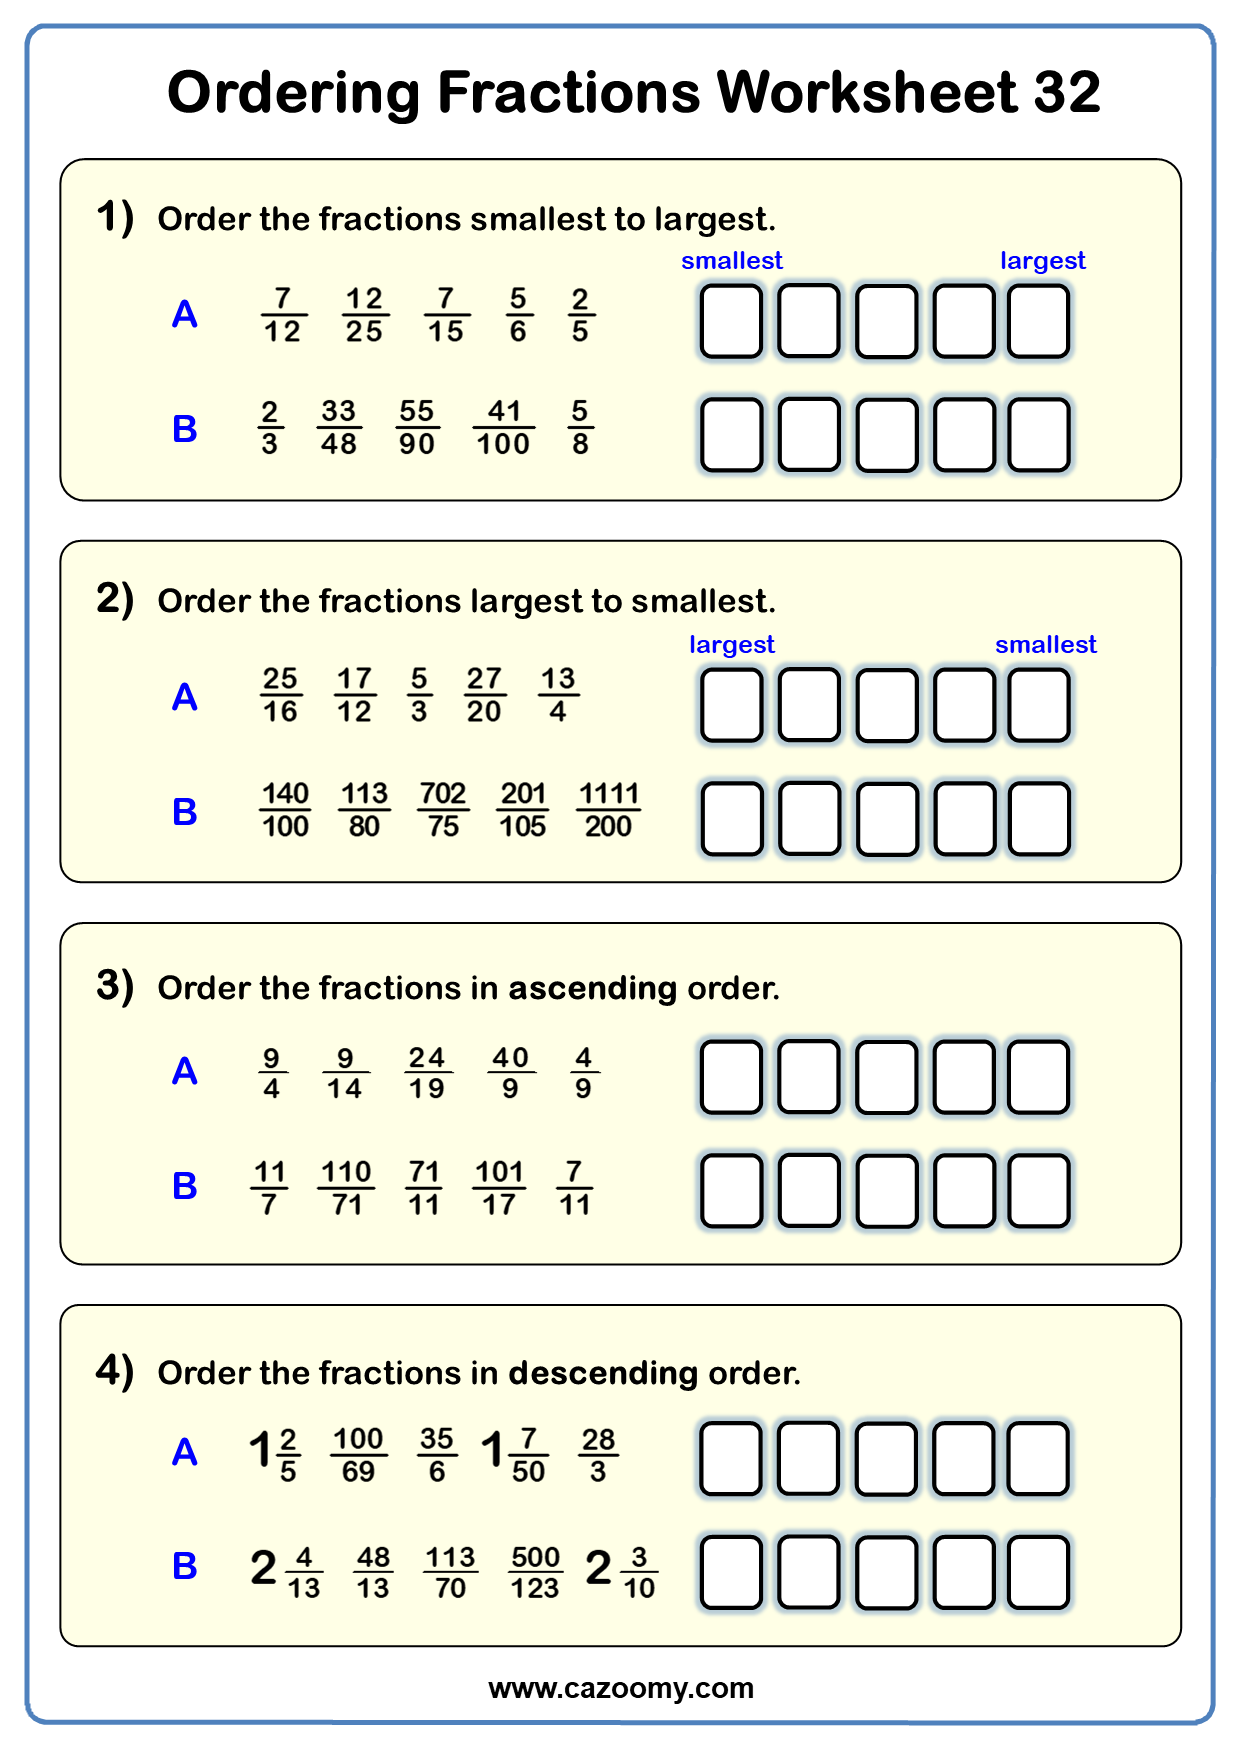 Ordering Fractions Worksheet 2